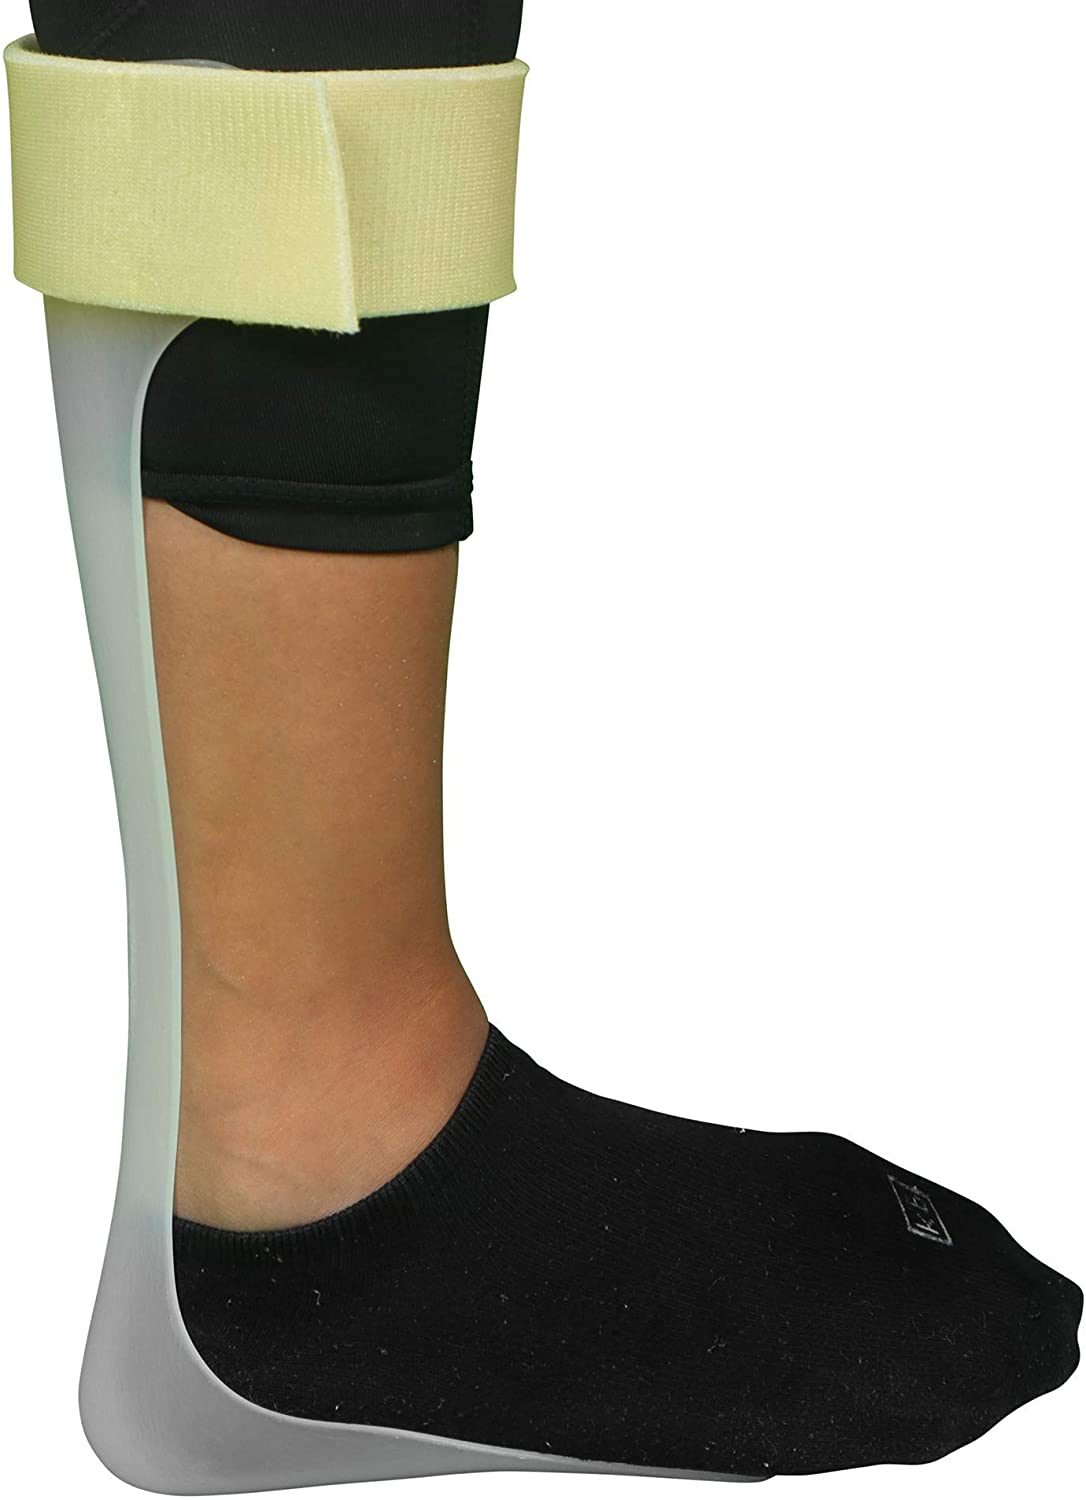 Ankle Foot Orthosis Support - AFO - Drop Foot Support Splint Right, Large